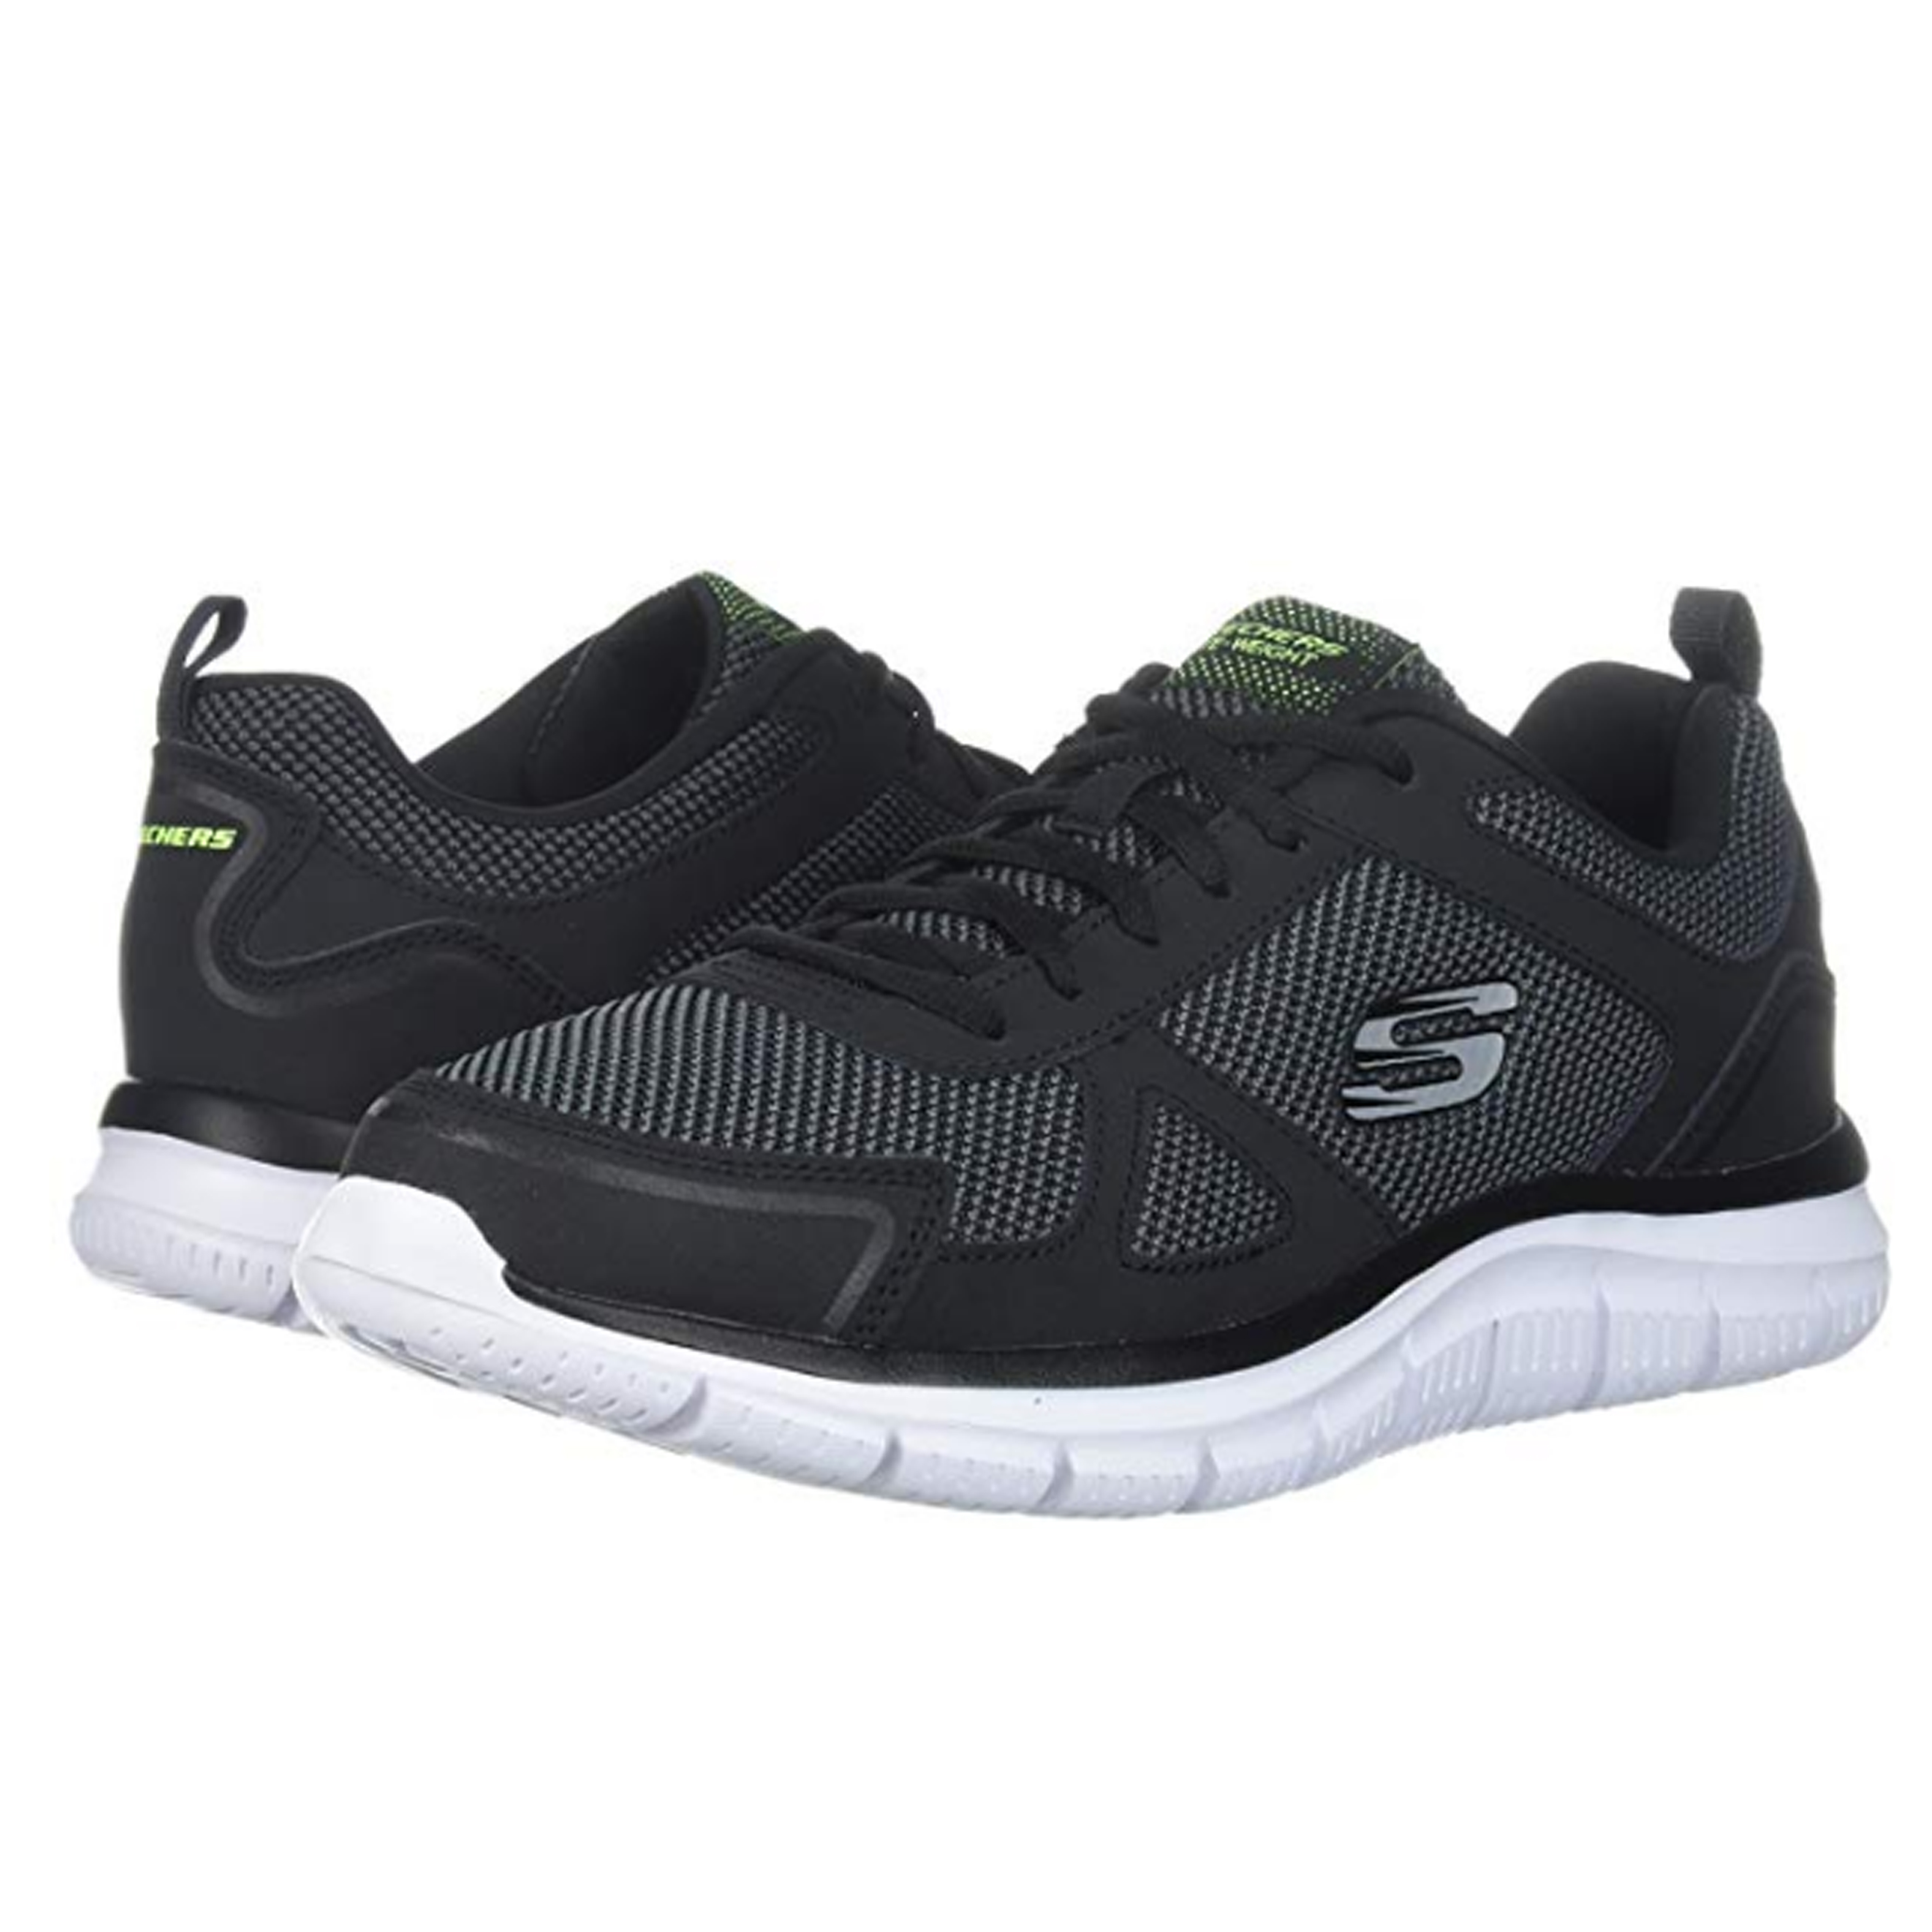 Details about Mens Skechers Track Bucolo Lace Up Gym Memory Foam Sport Trainers 52630 Fashion